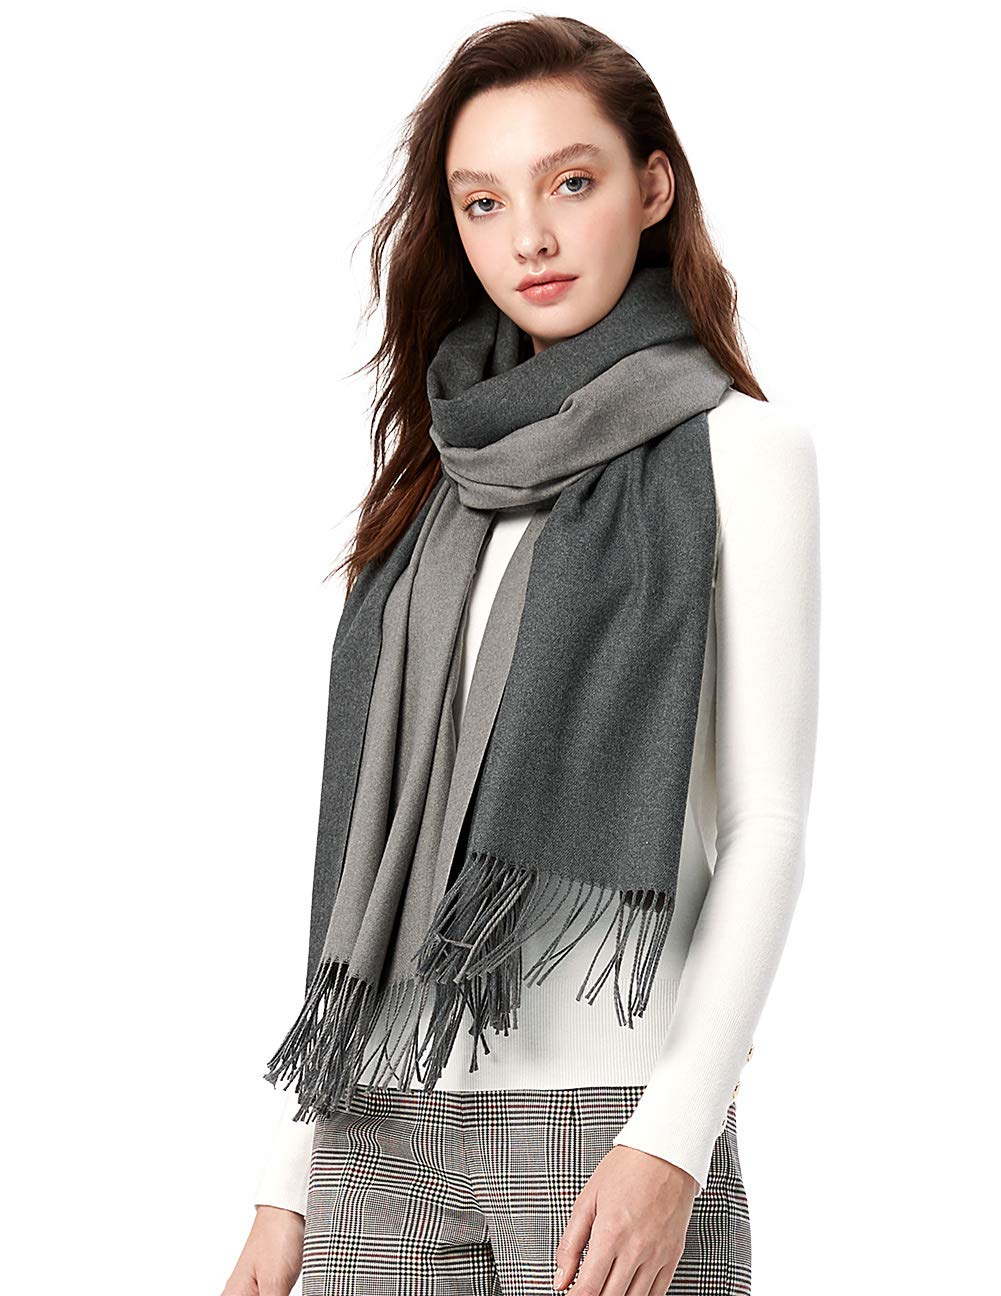 MaaMgci Womens Mens Two Tone Scarf Cashmere Feel Pashmina Shawls Wraps Blanket Scarf Winter Stole, Light Grey and Grey